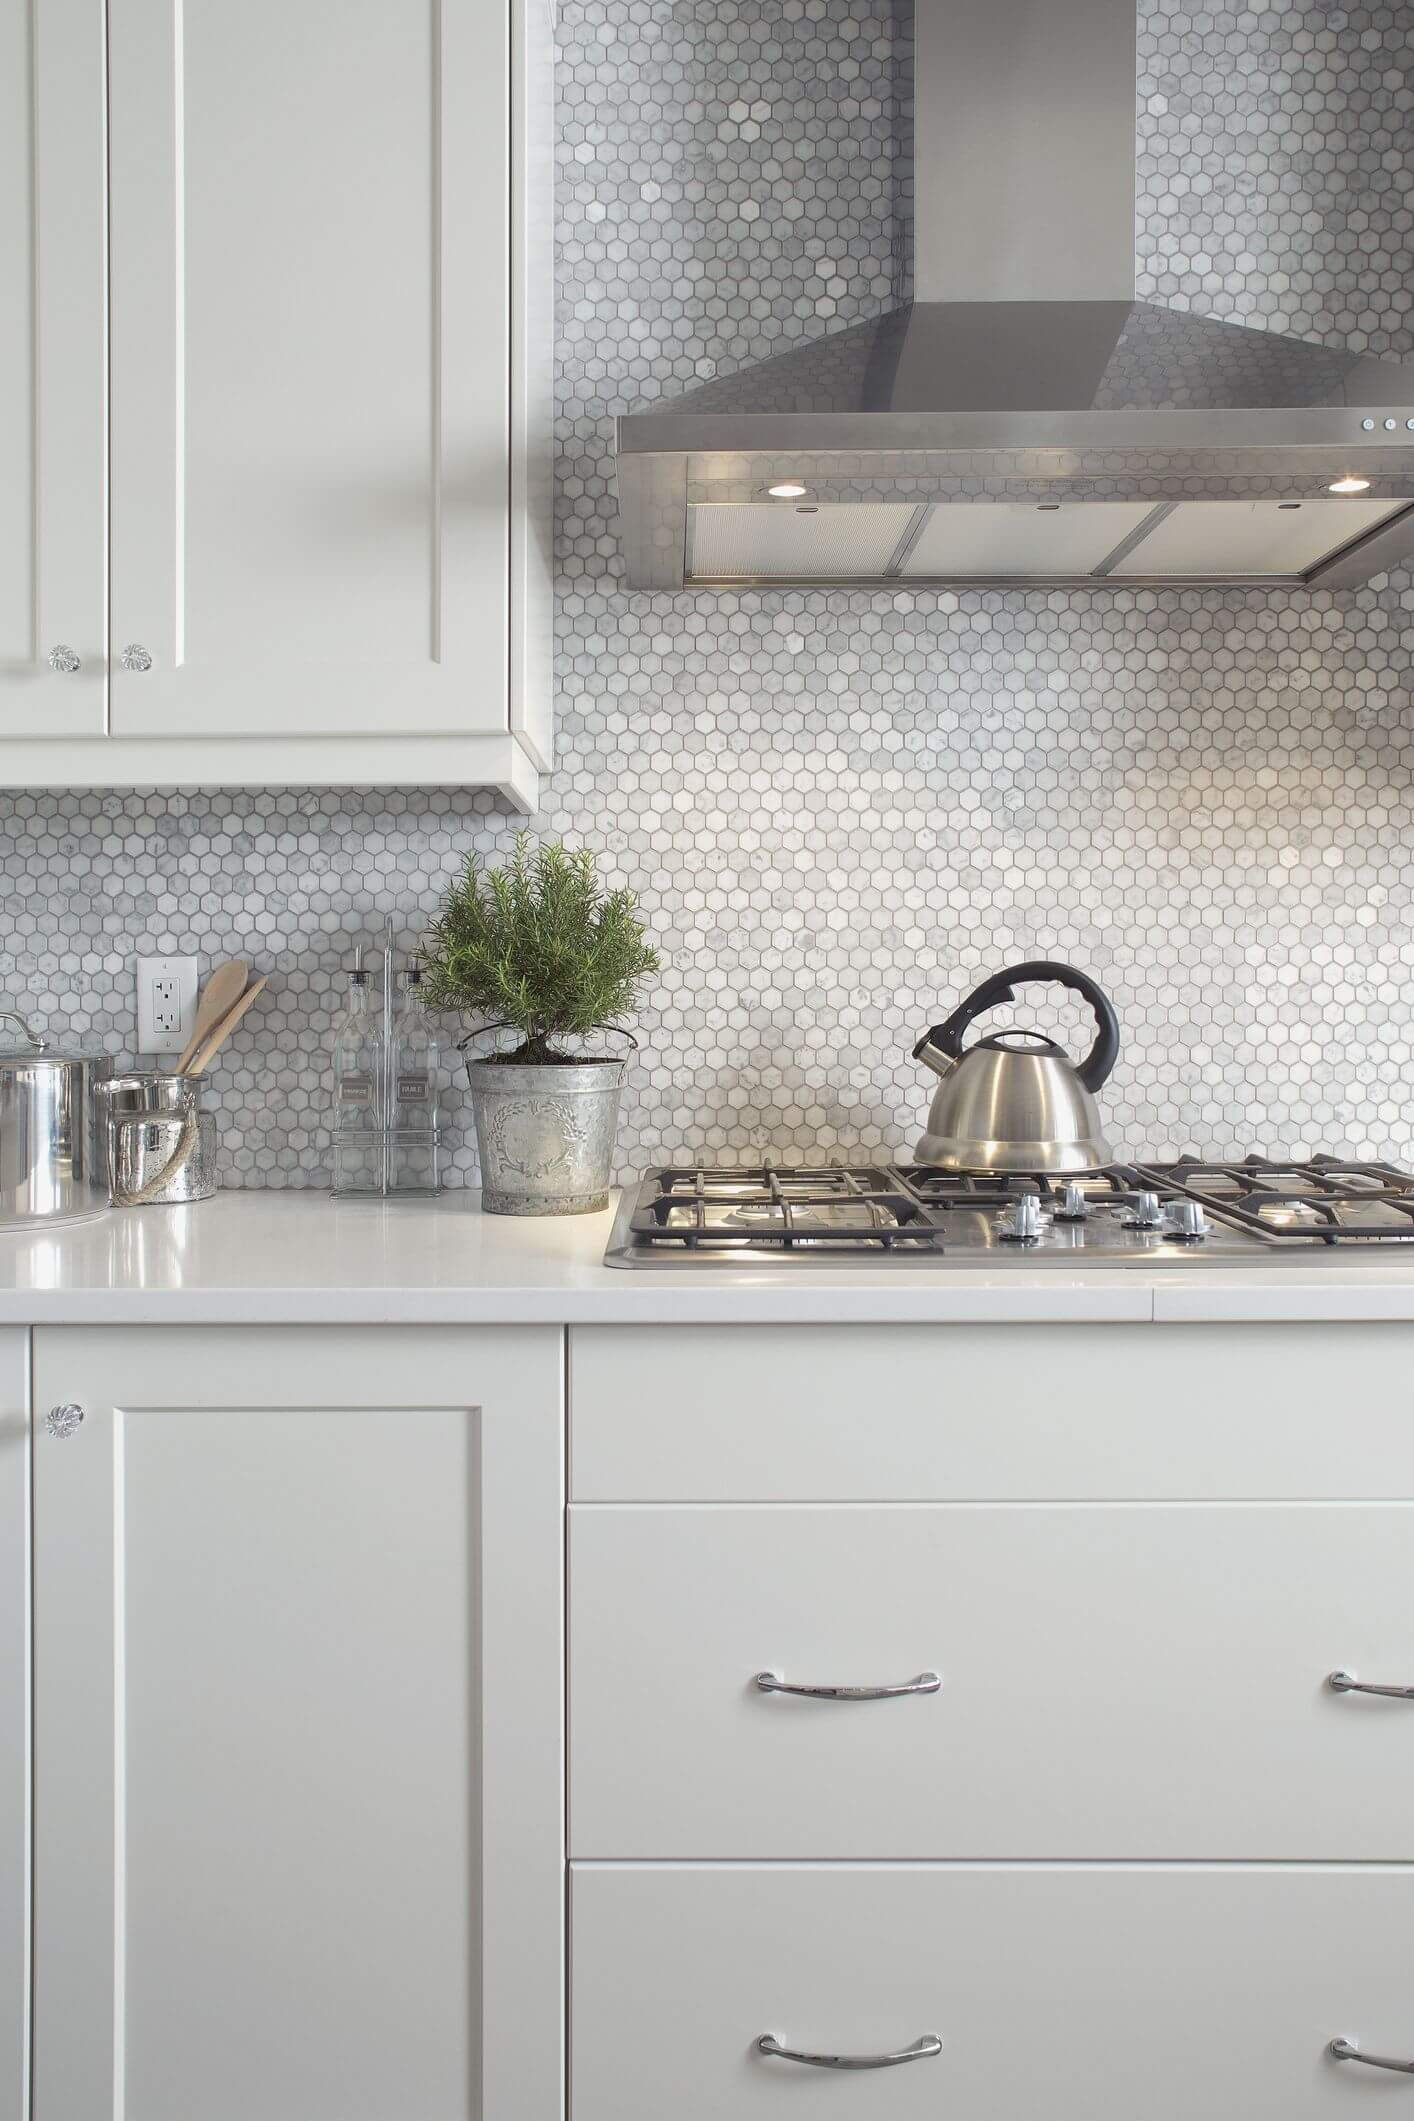 Countertops and backsplashes are popular materials to replace.